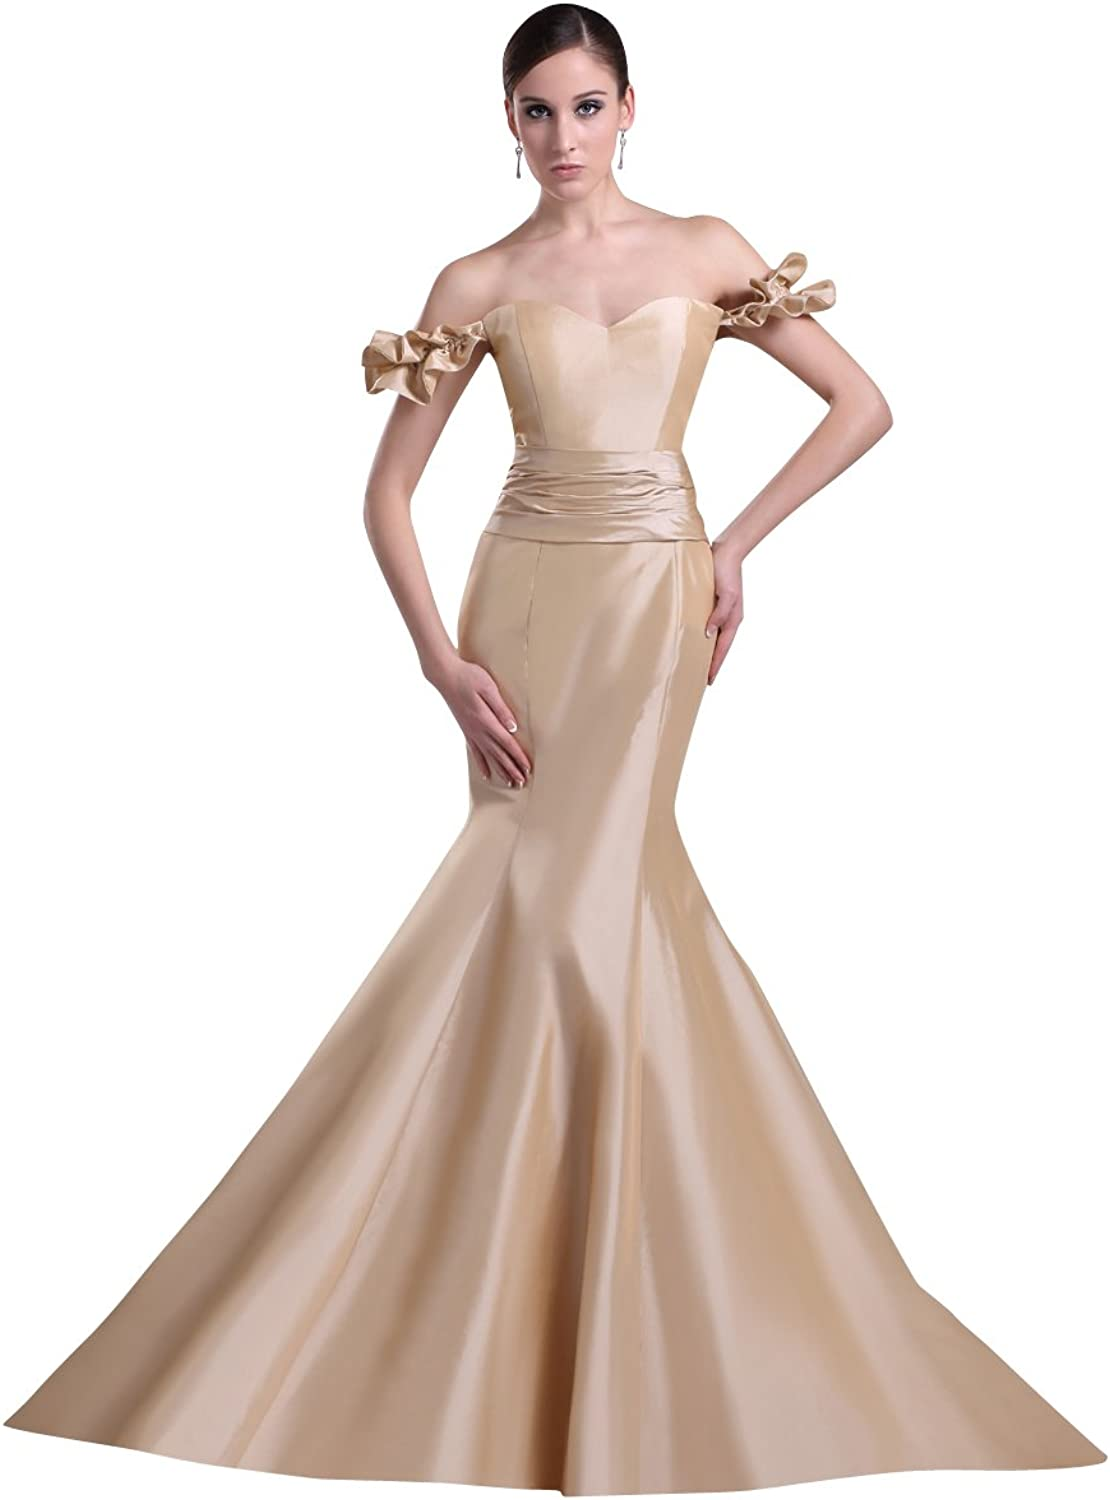 Vampal Champagne Taffeta Off The Shoulder Mermaid Prom Dress With Ruffle